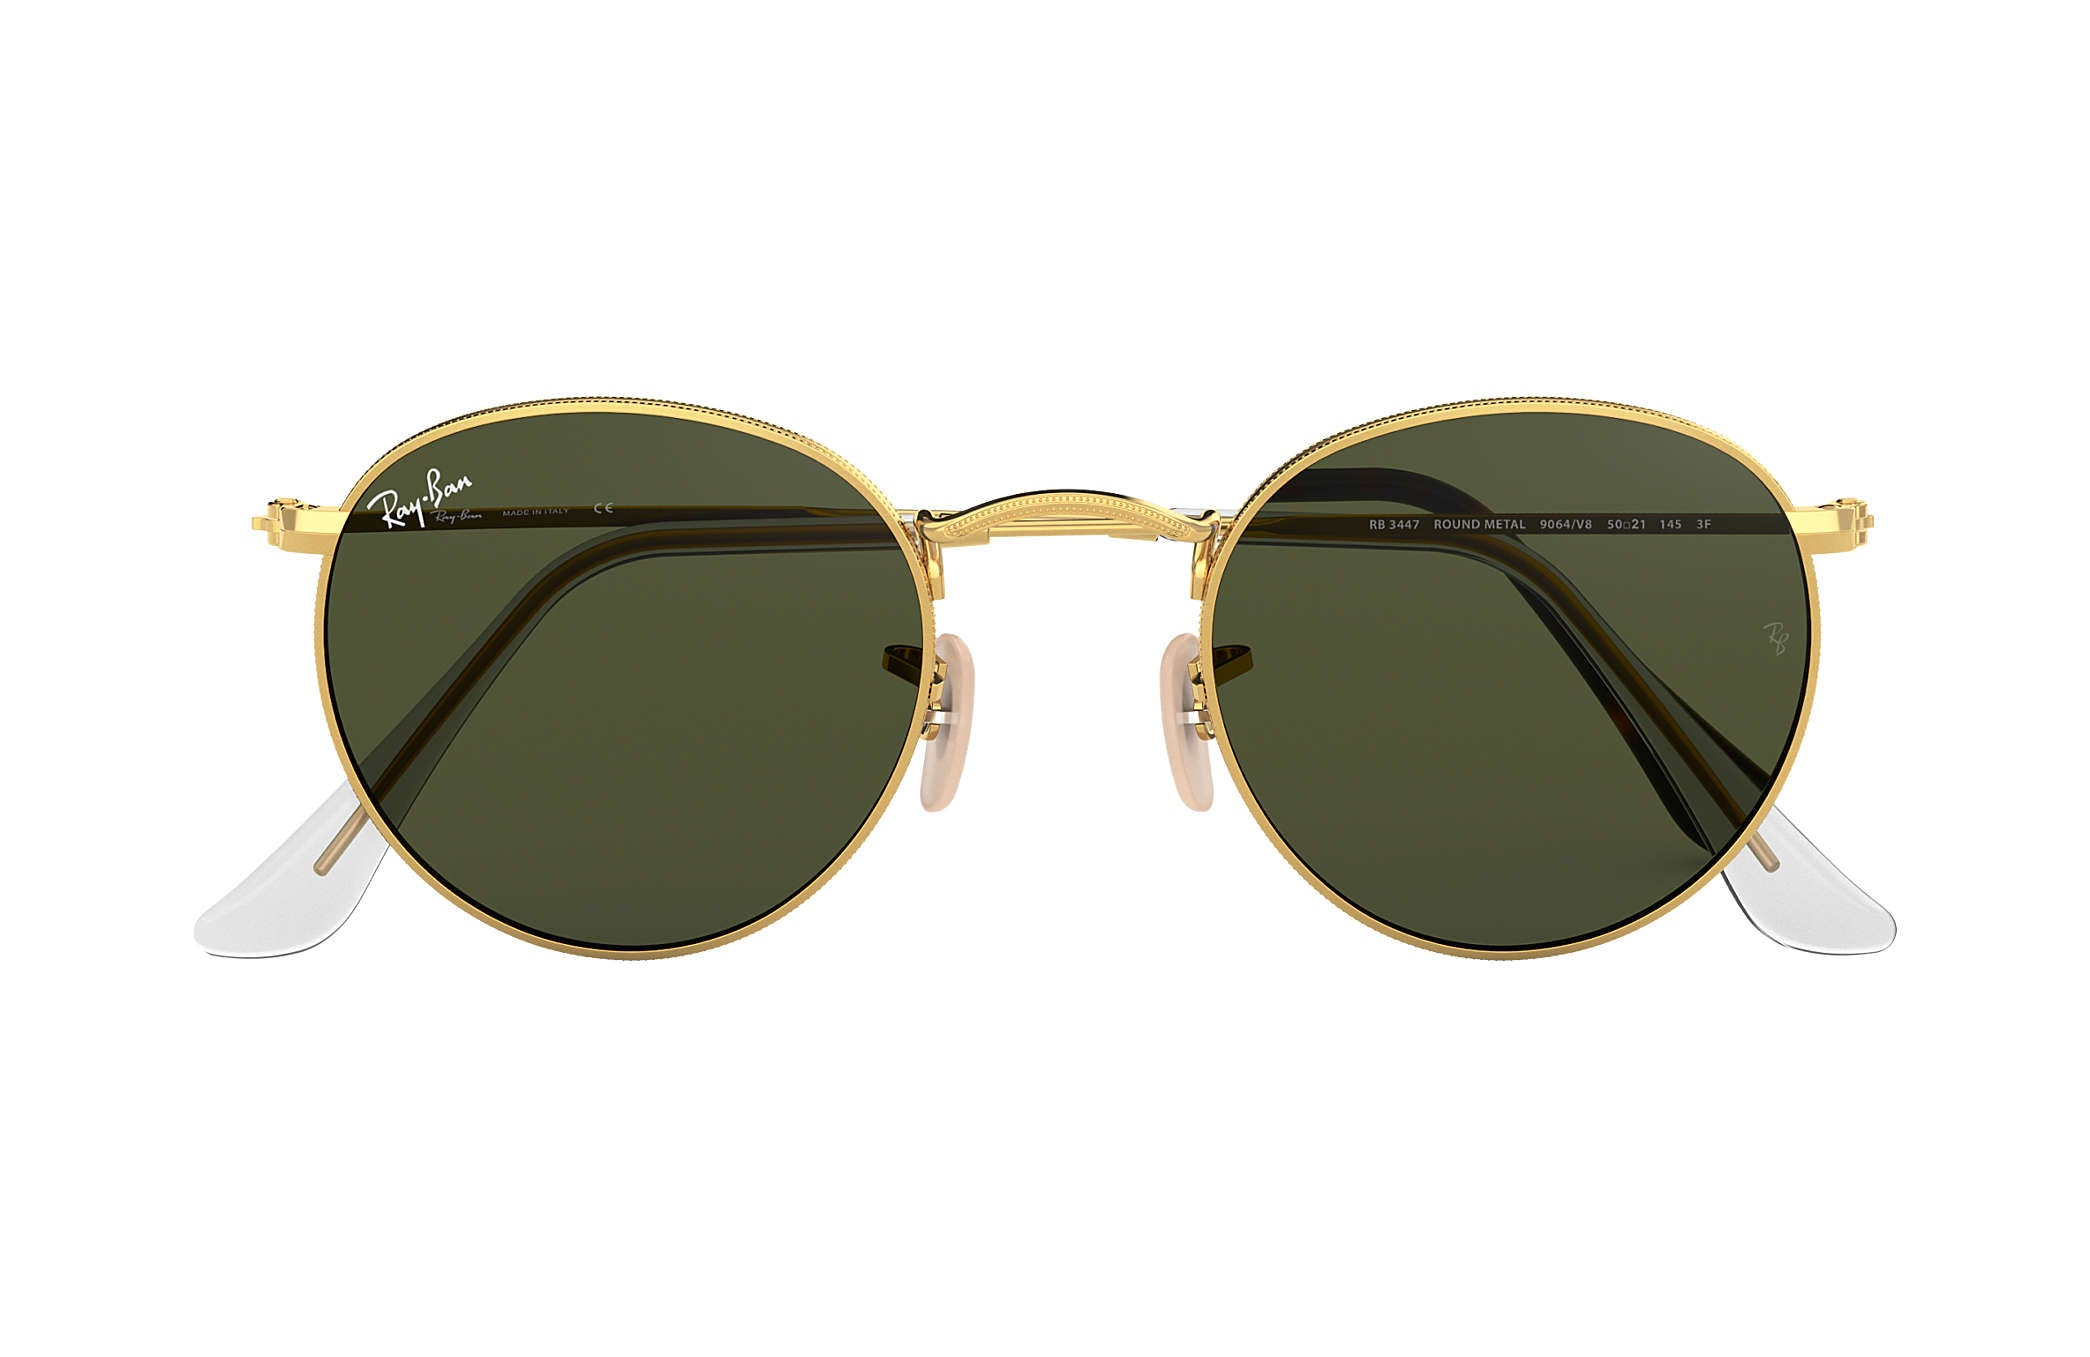 ROUND METAL SUNGLASSES GOLD - GREEN CLASSIC